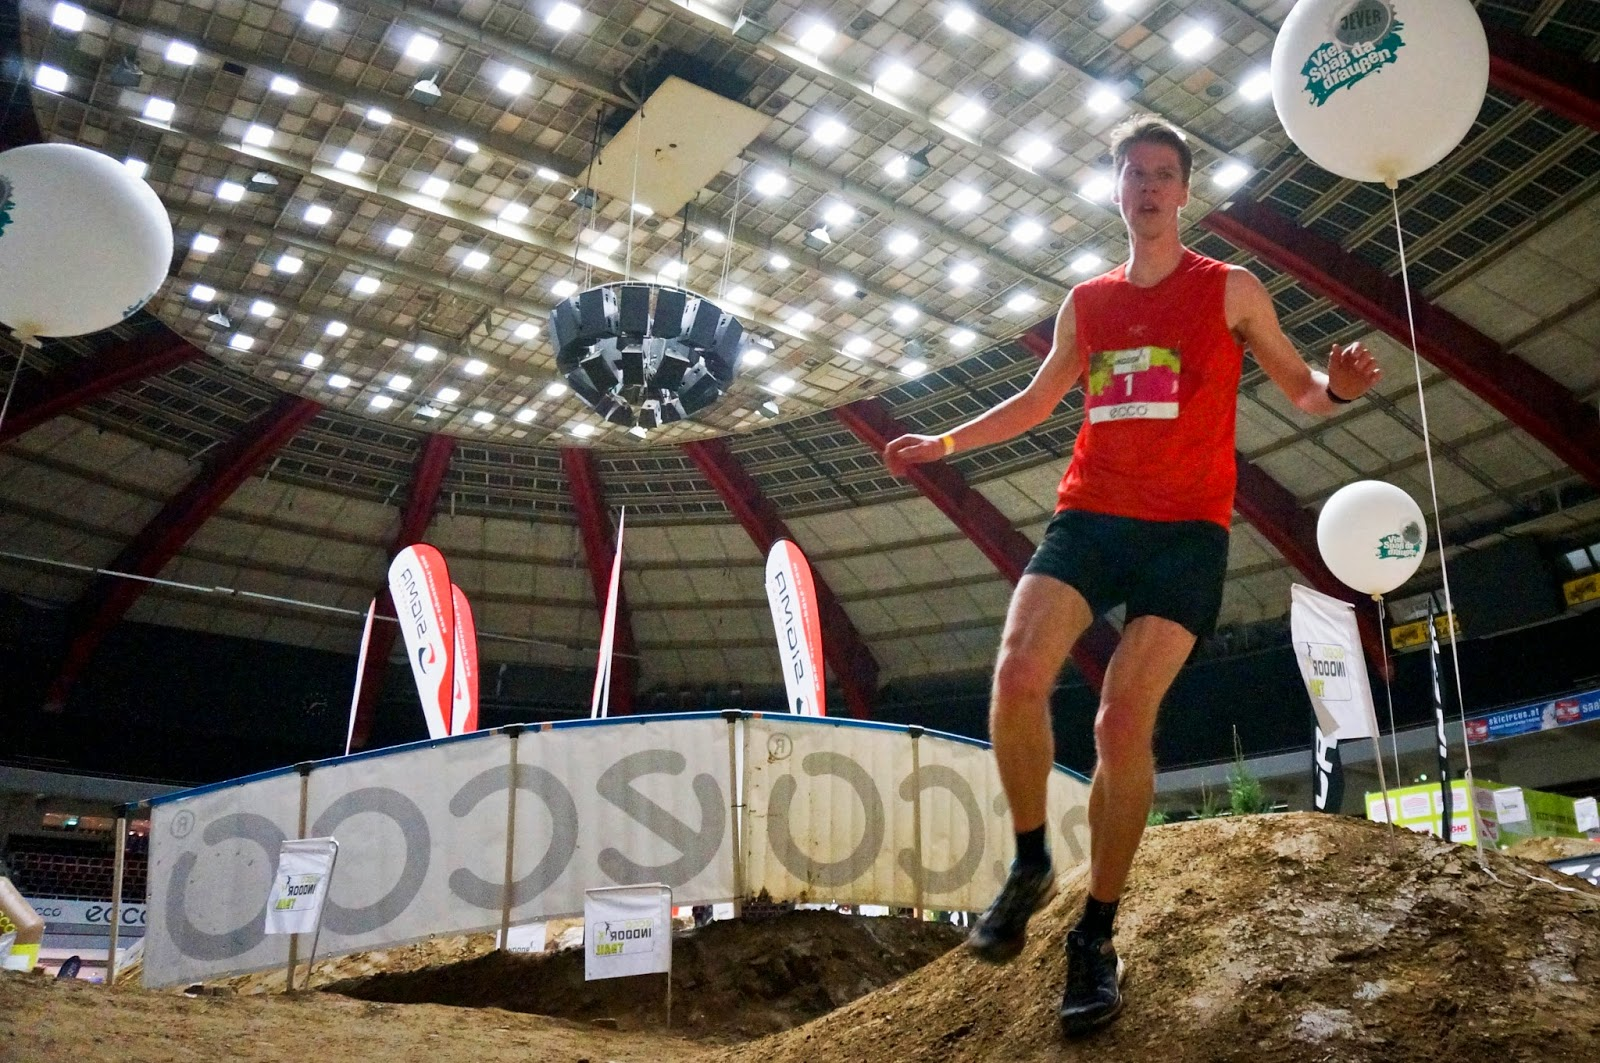 Runssel in pictures ecco indoor trail dortmund germany part 2 - Div onclick href ...